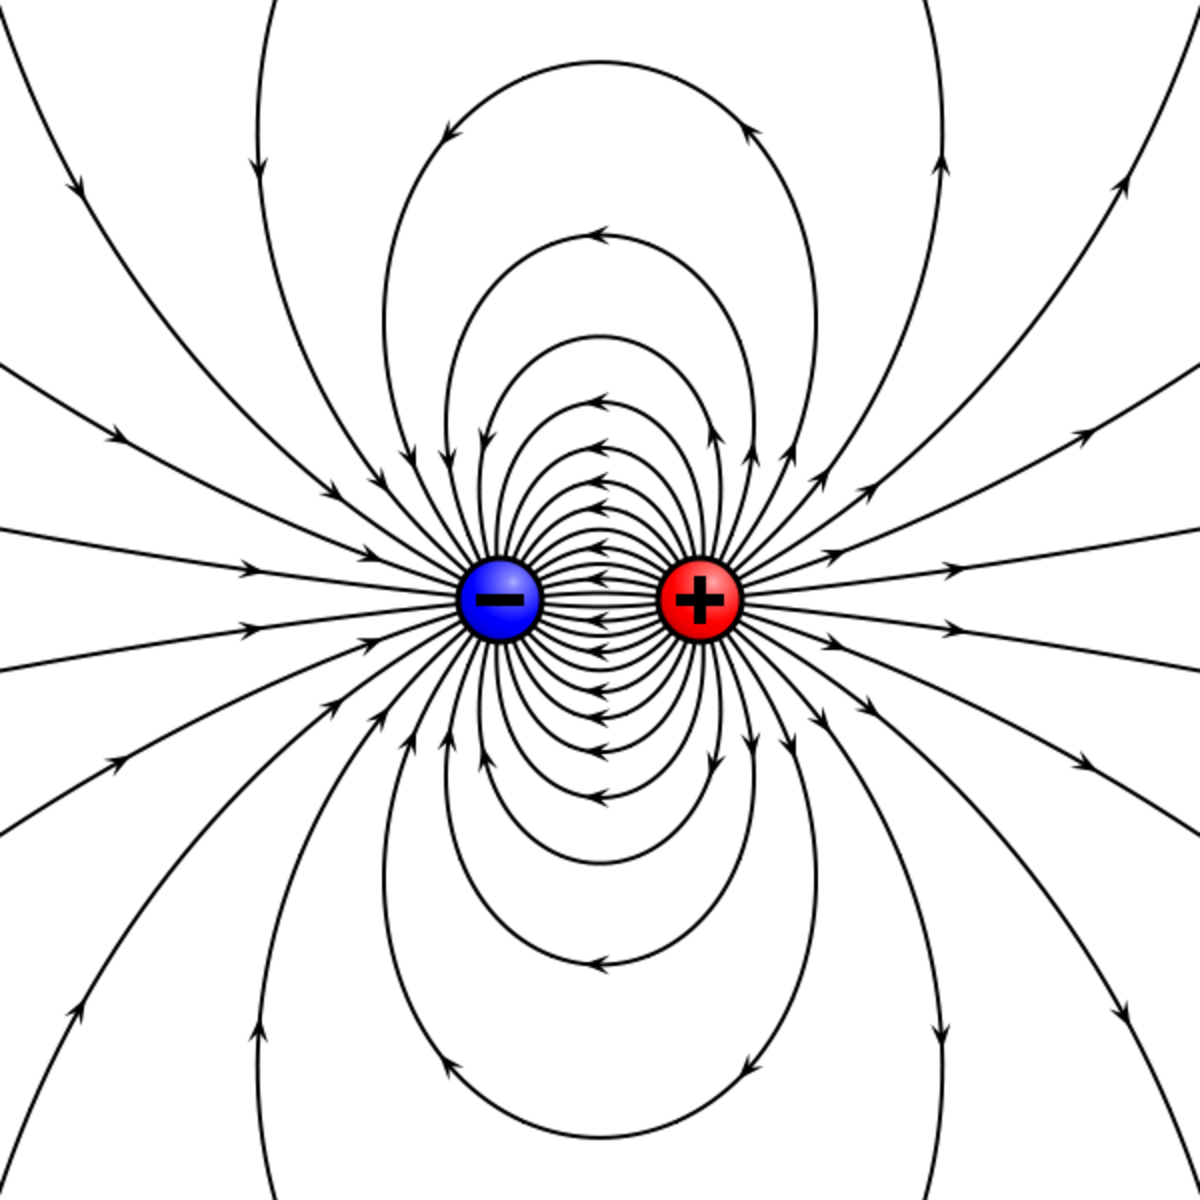 Lines of force between a positive and negative charge.